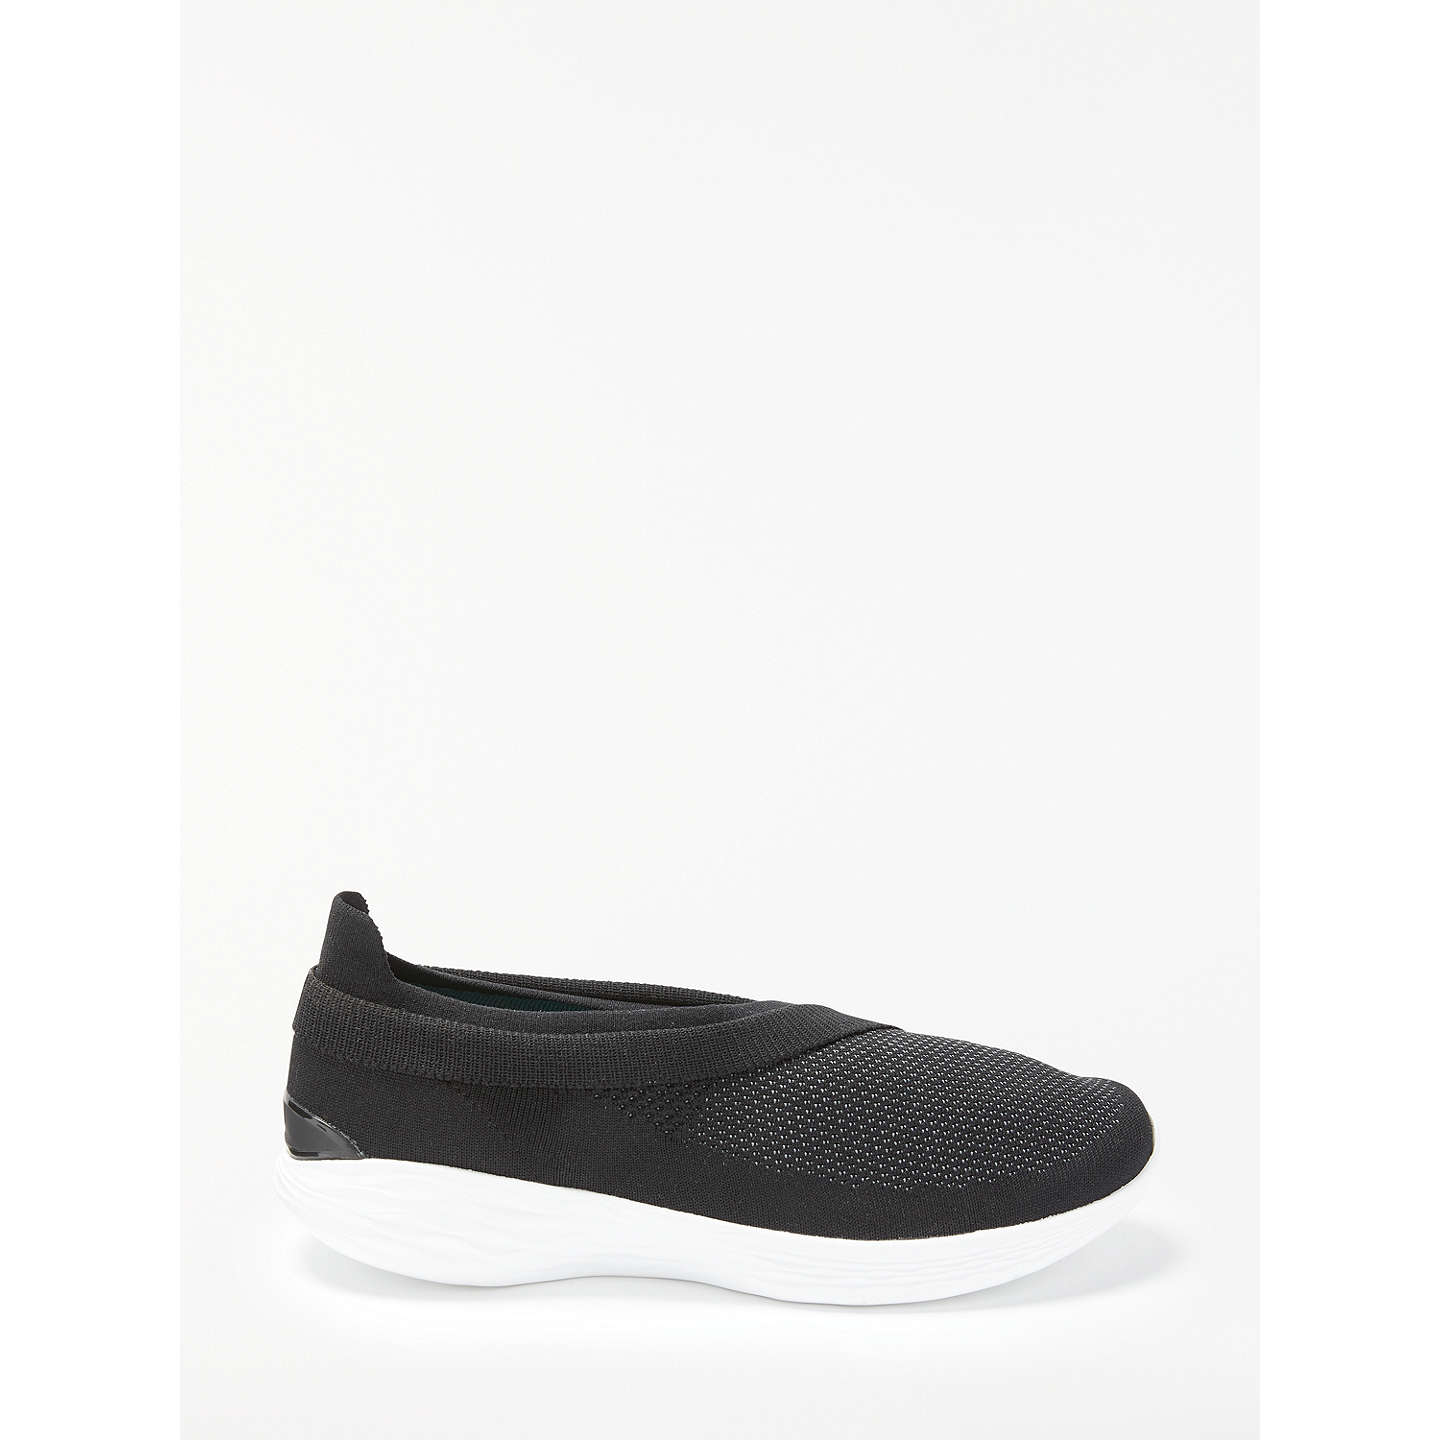 BuySkechers You Luxe Slip On Trainers, Black/White, 3 Online at johnlewis.